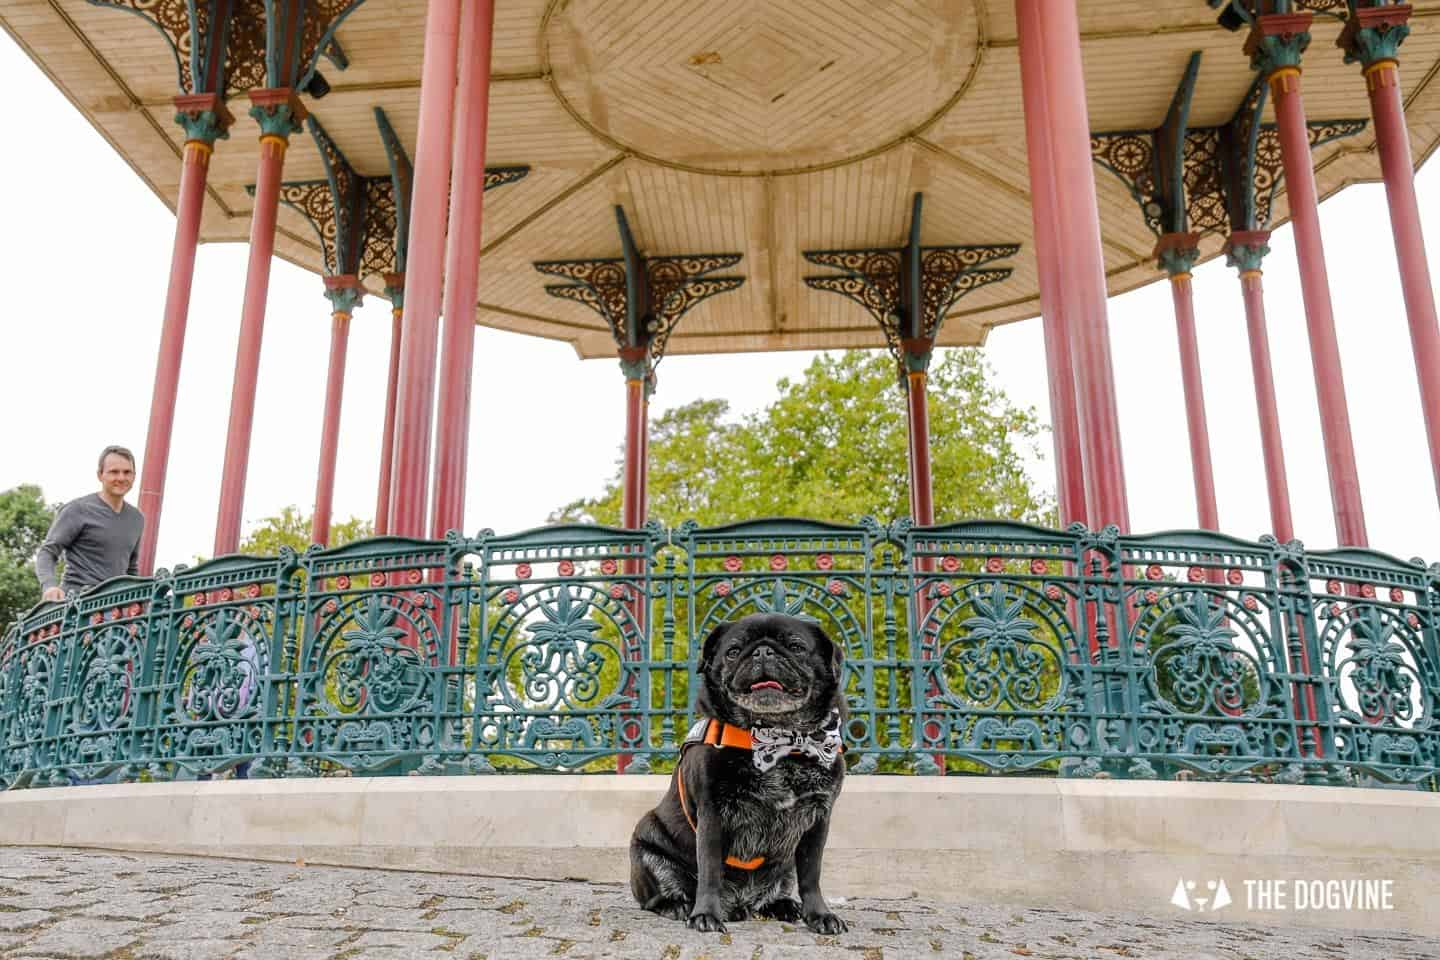 My Dog-friendly London Clapham & Battersea By Hemingway The Pug Clapham Common Bandstand 2